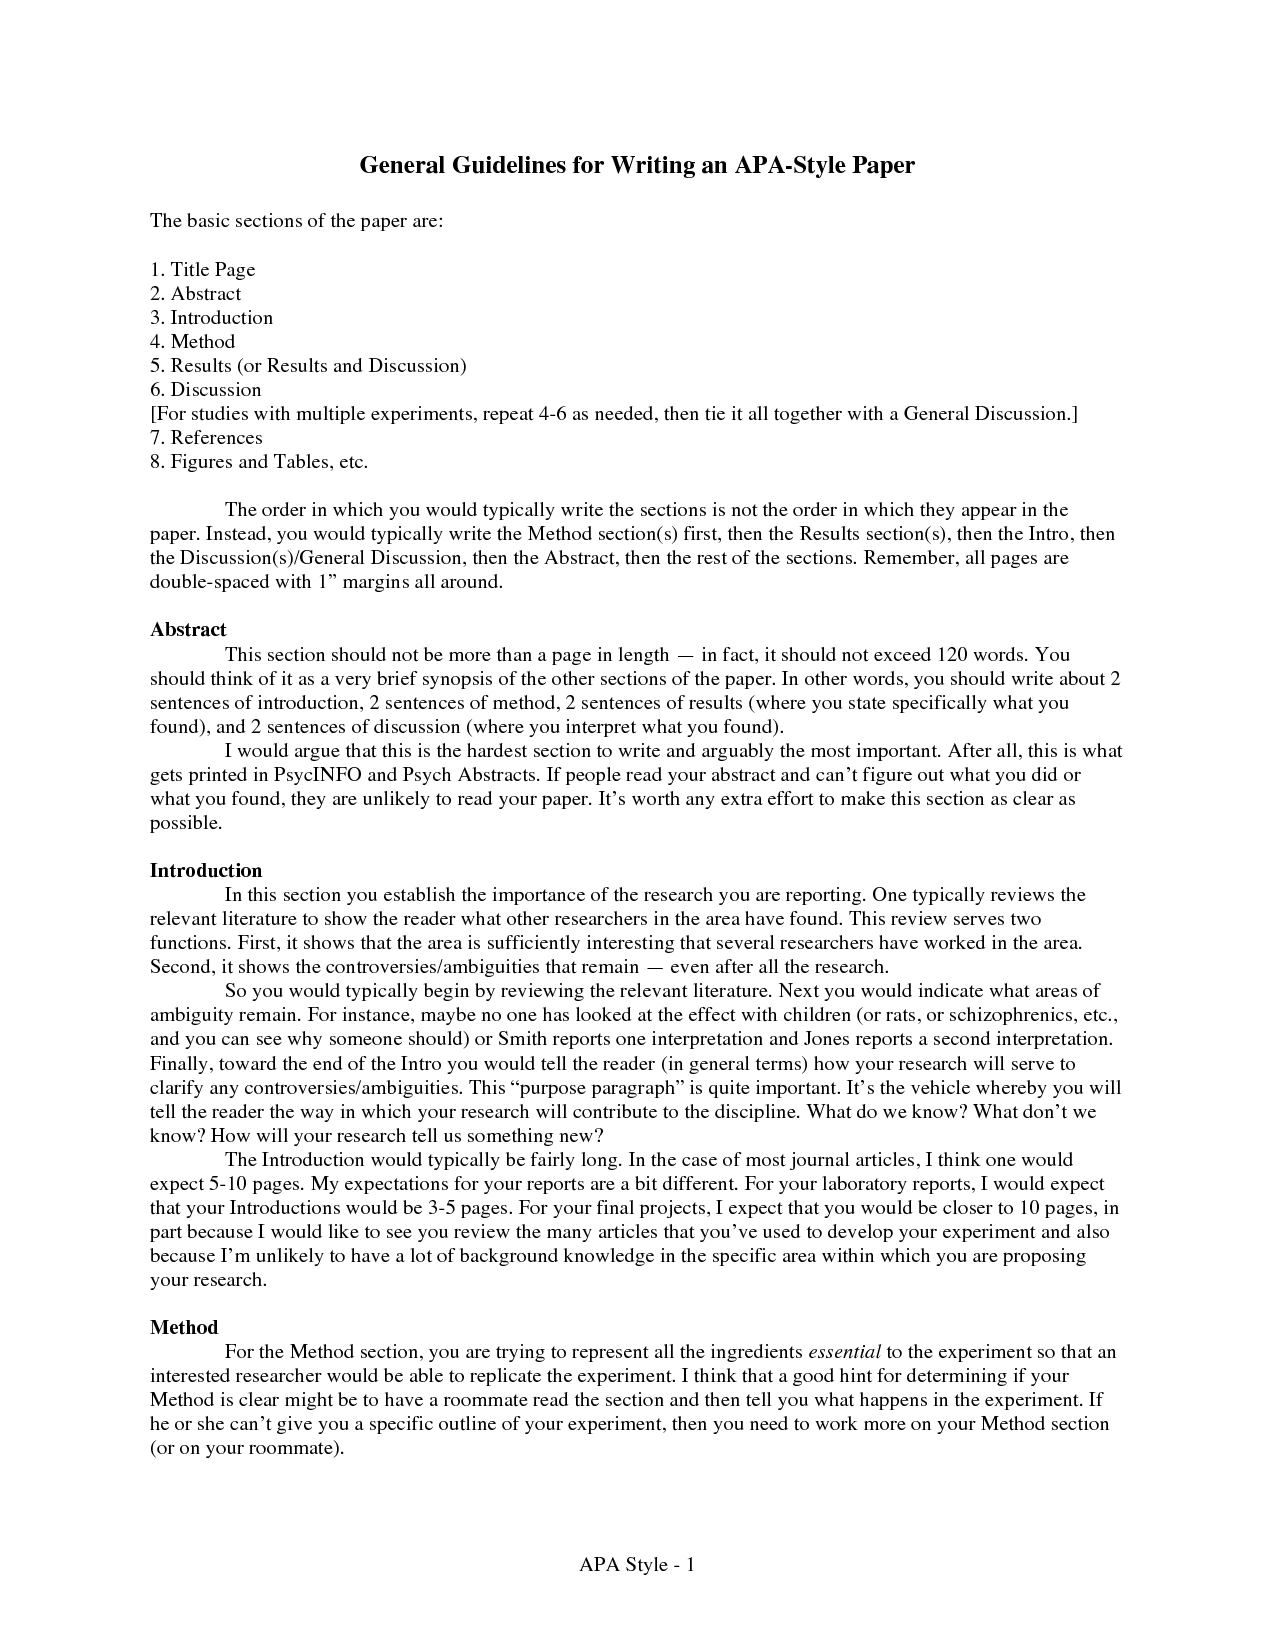 004 Research Paper Discussion Section Of Apa Sensational A Apa-style How To Write The Full